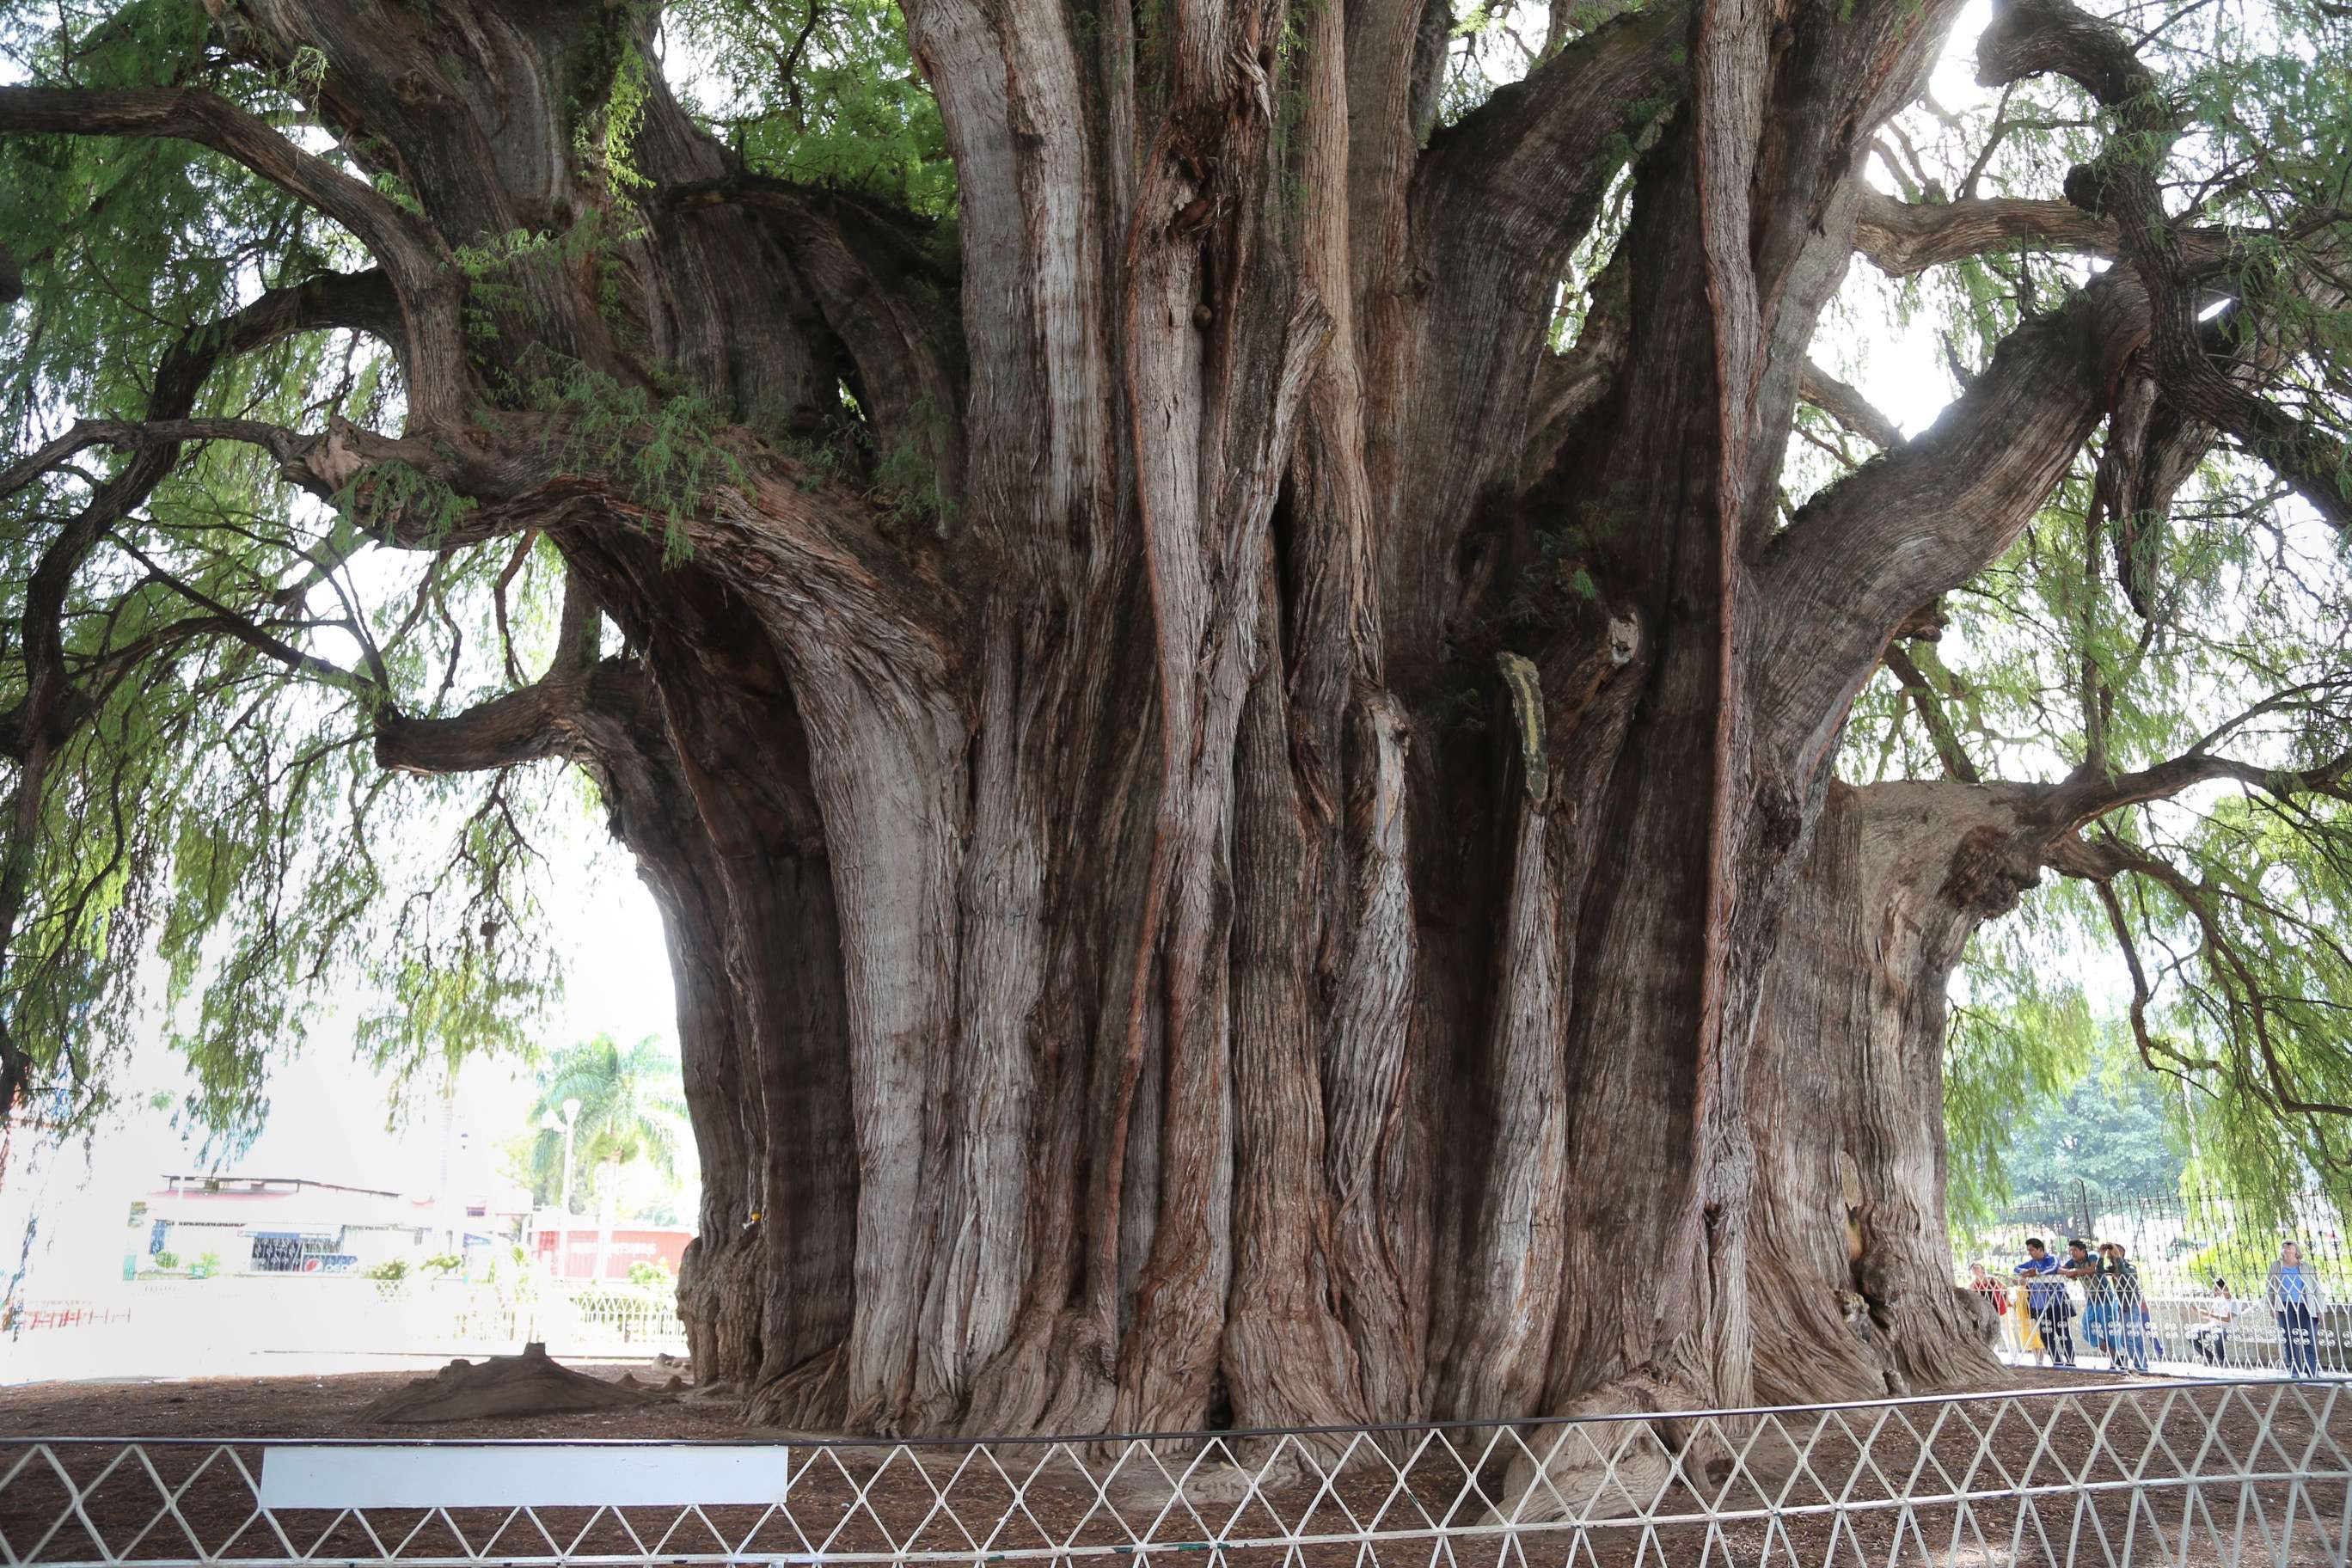 Over the centuries, El Tule's trunk has grown complex and gnarled.